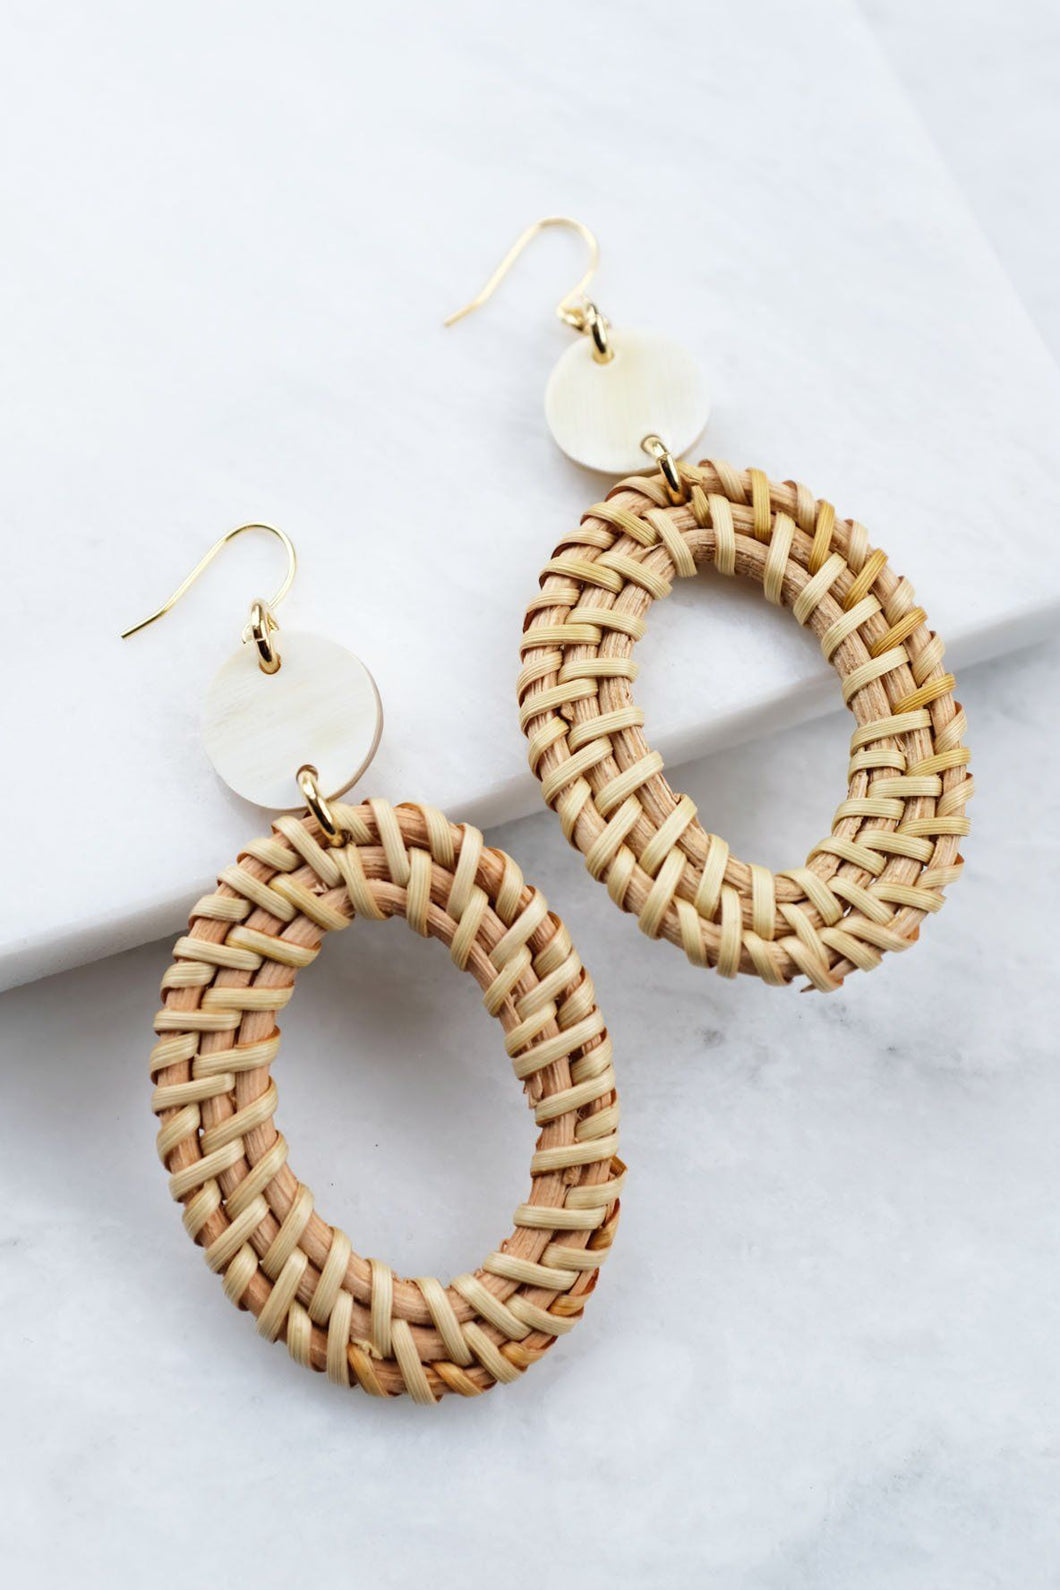 Jewelry: Earrings: 16K Gold-Plated Brass Buffalo Horn & Rattan Oval Statement.